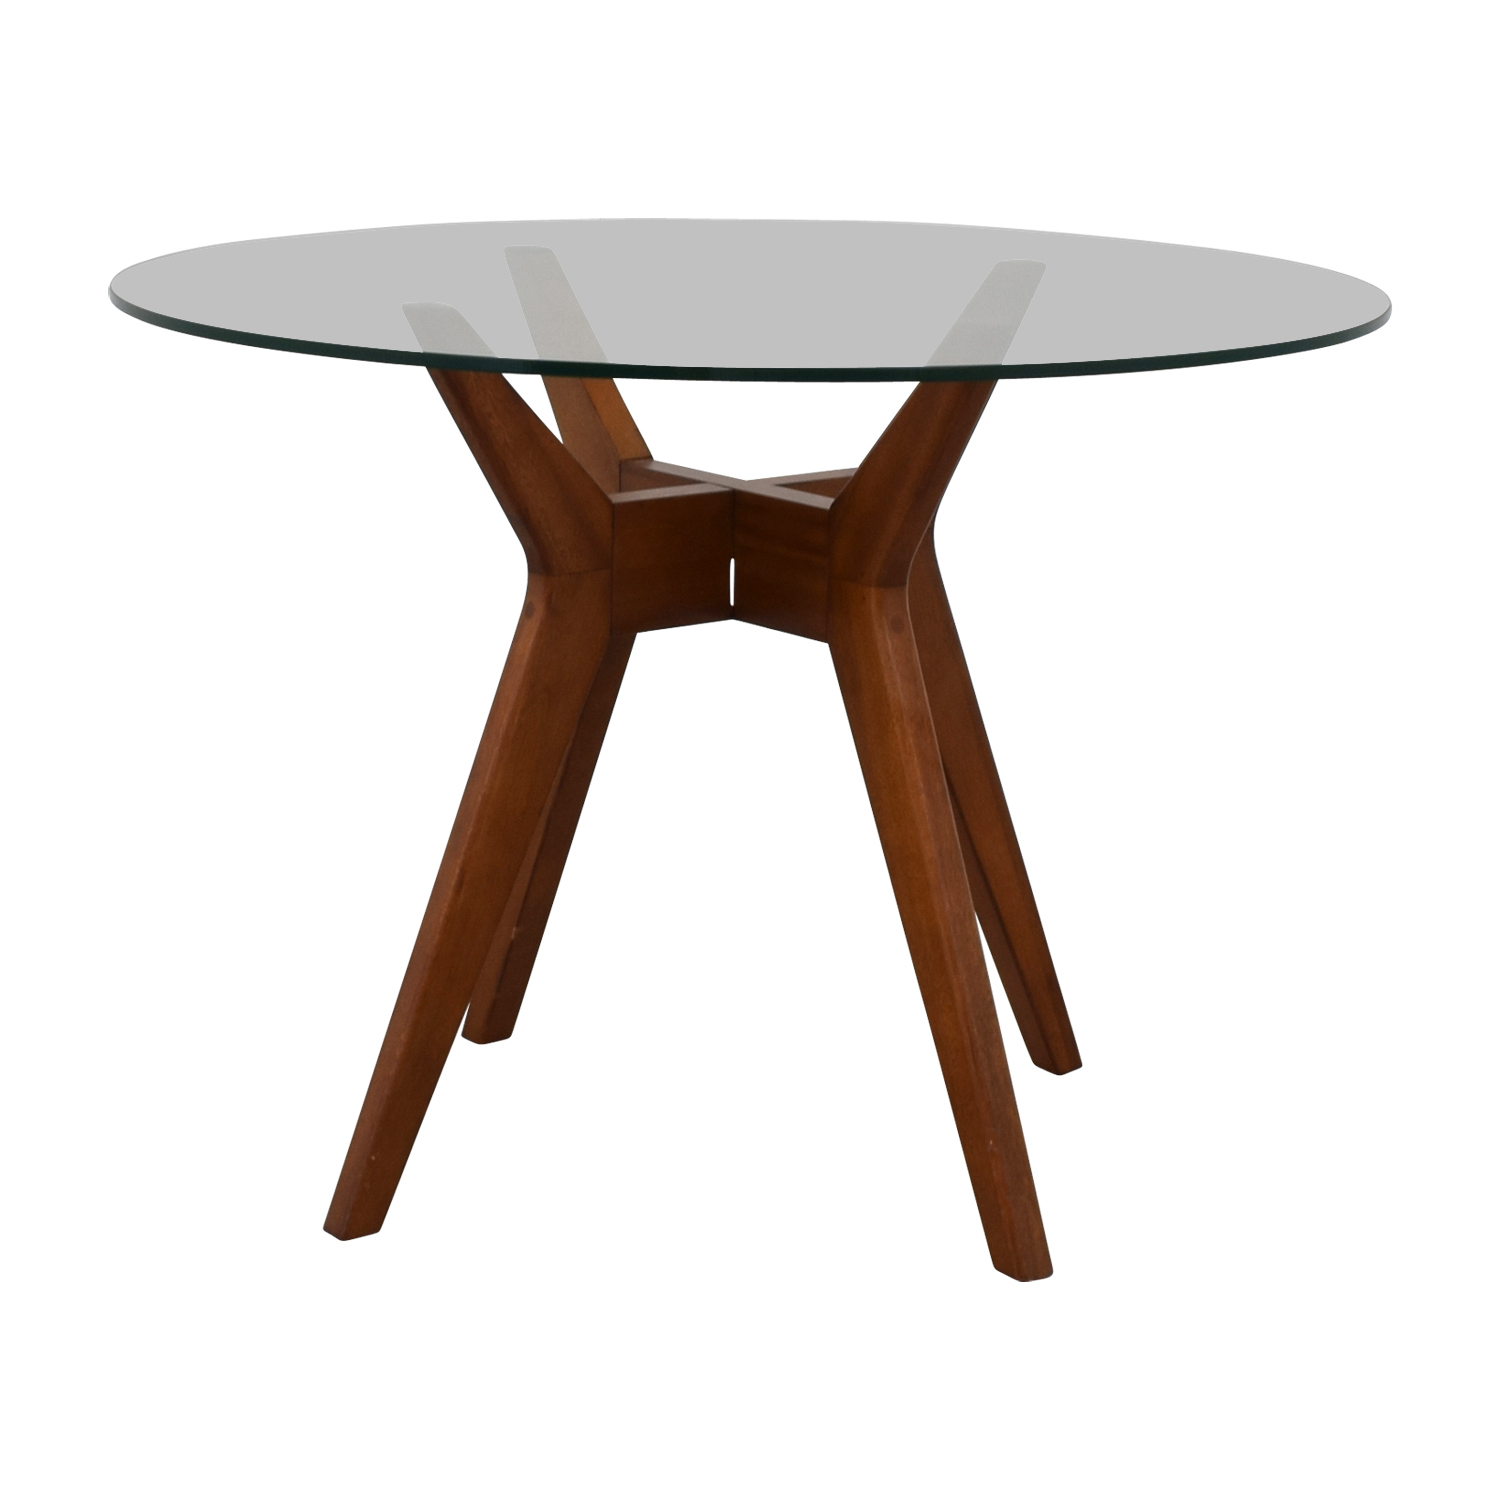 West Elm West Elm Round Glass Dining Table nj